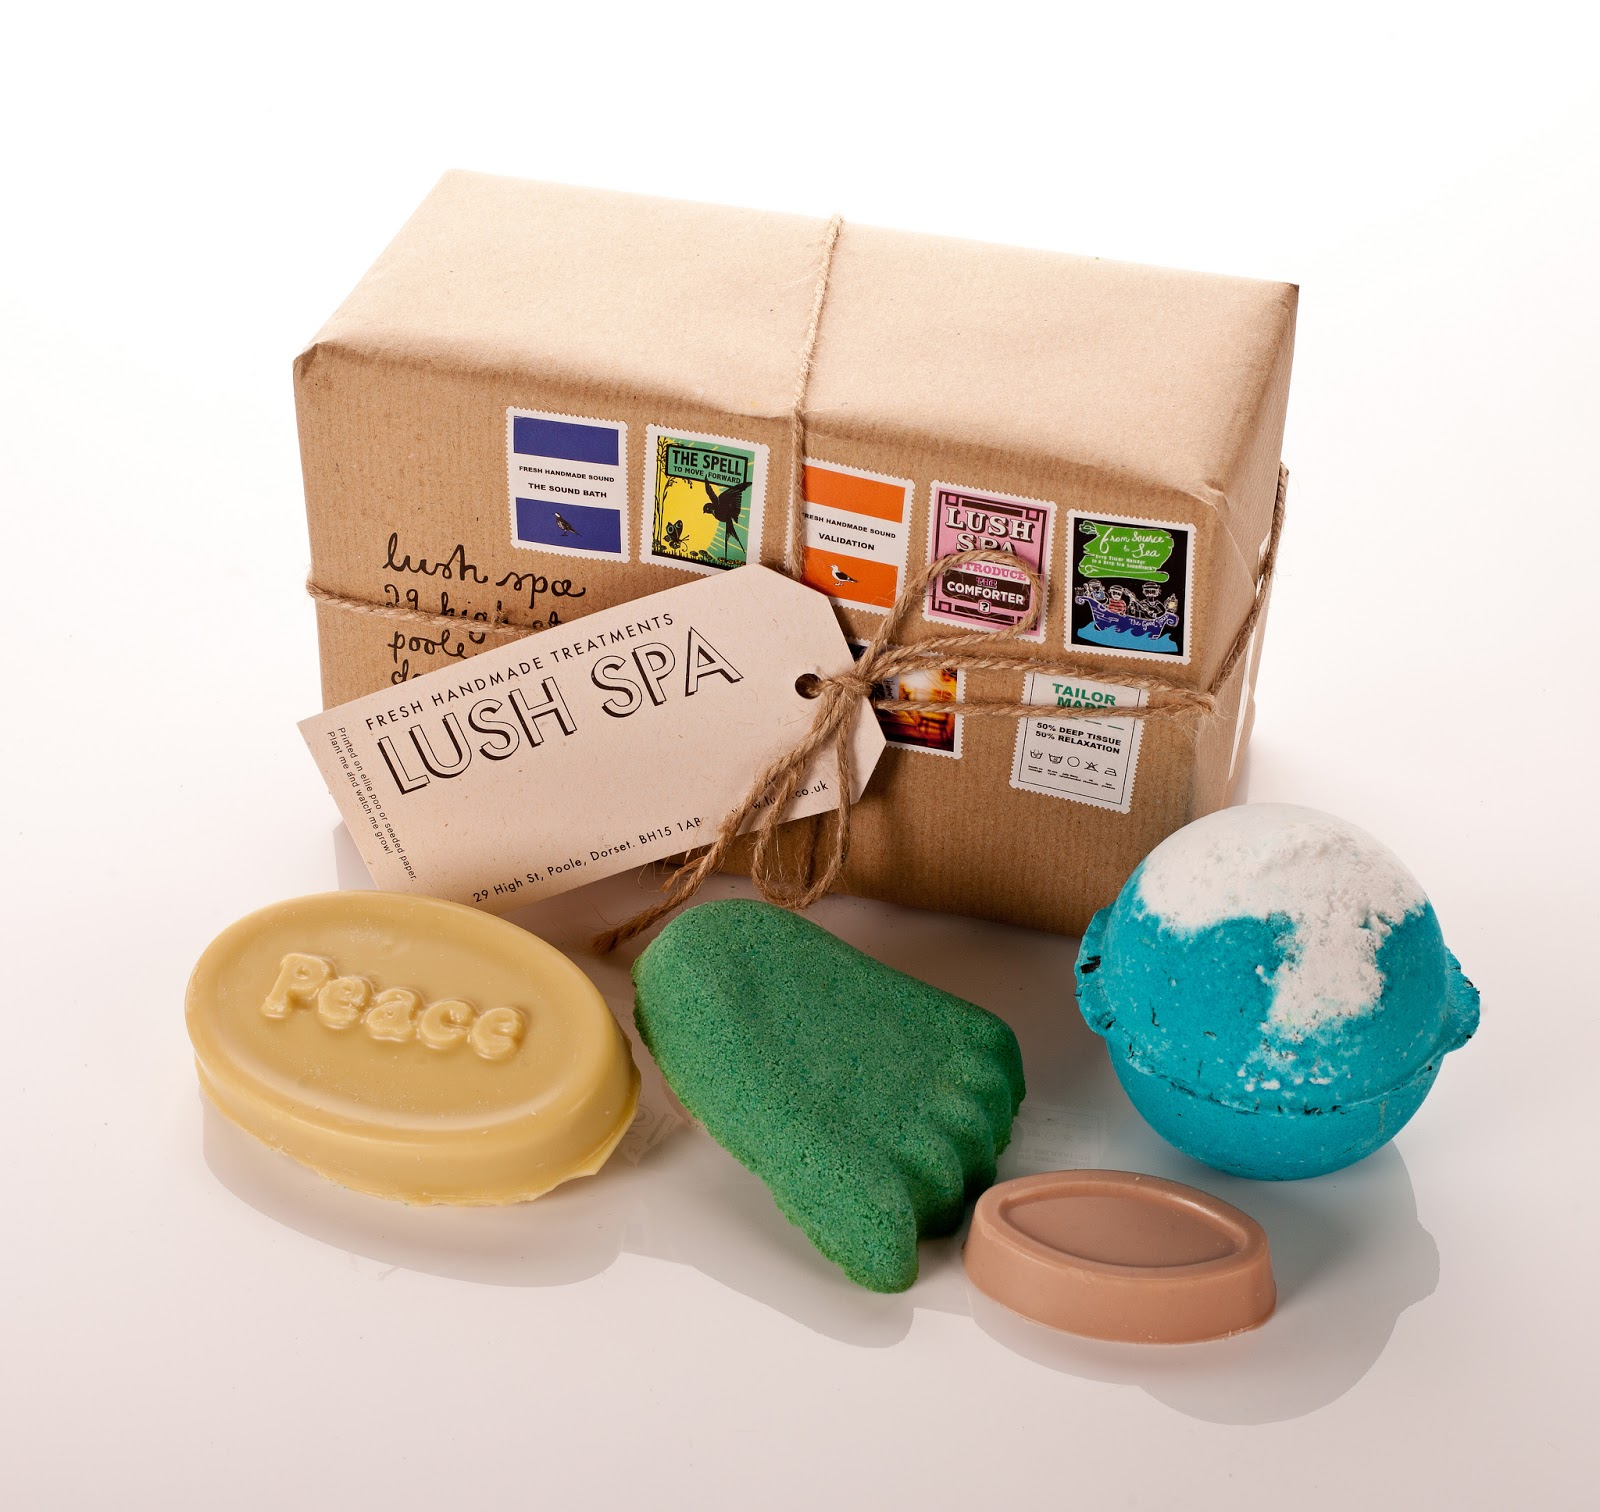 The Yellow Sunflower: Introducing: The Lush Spa Gift Box